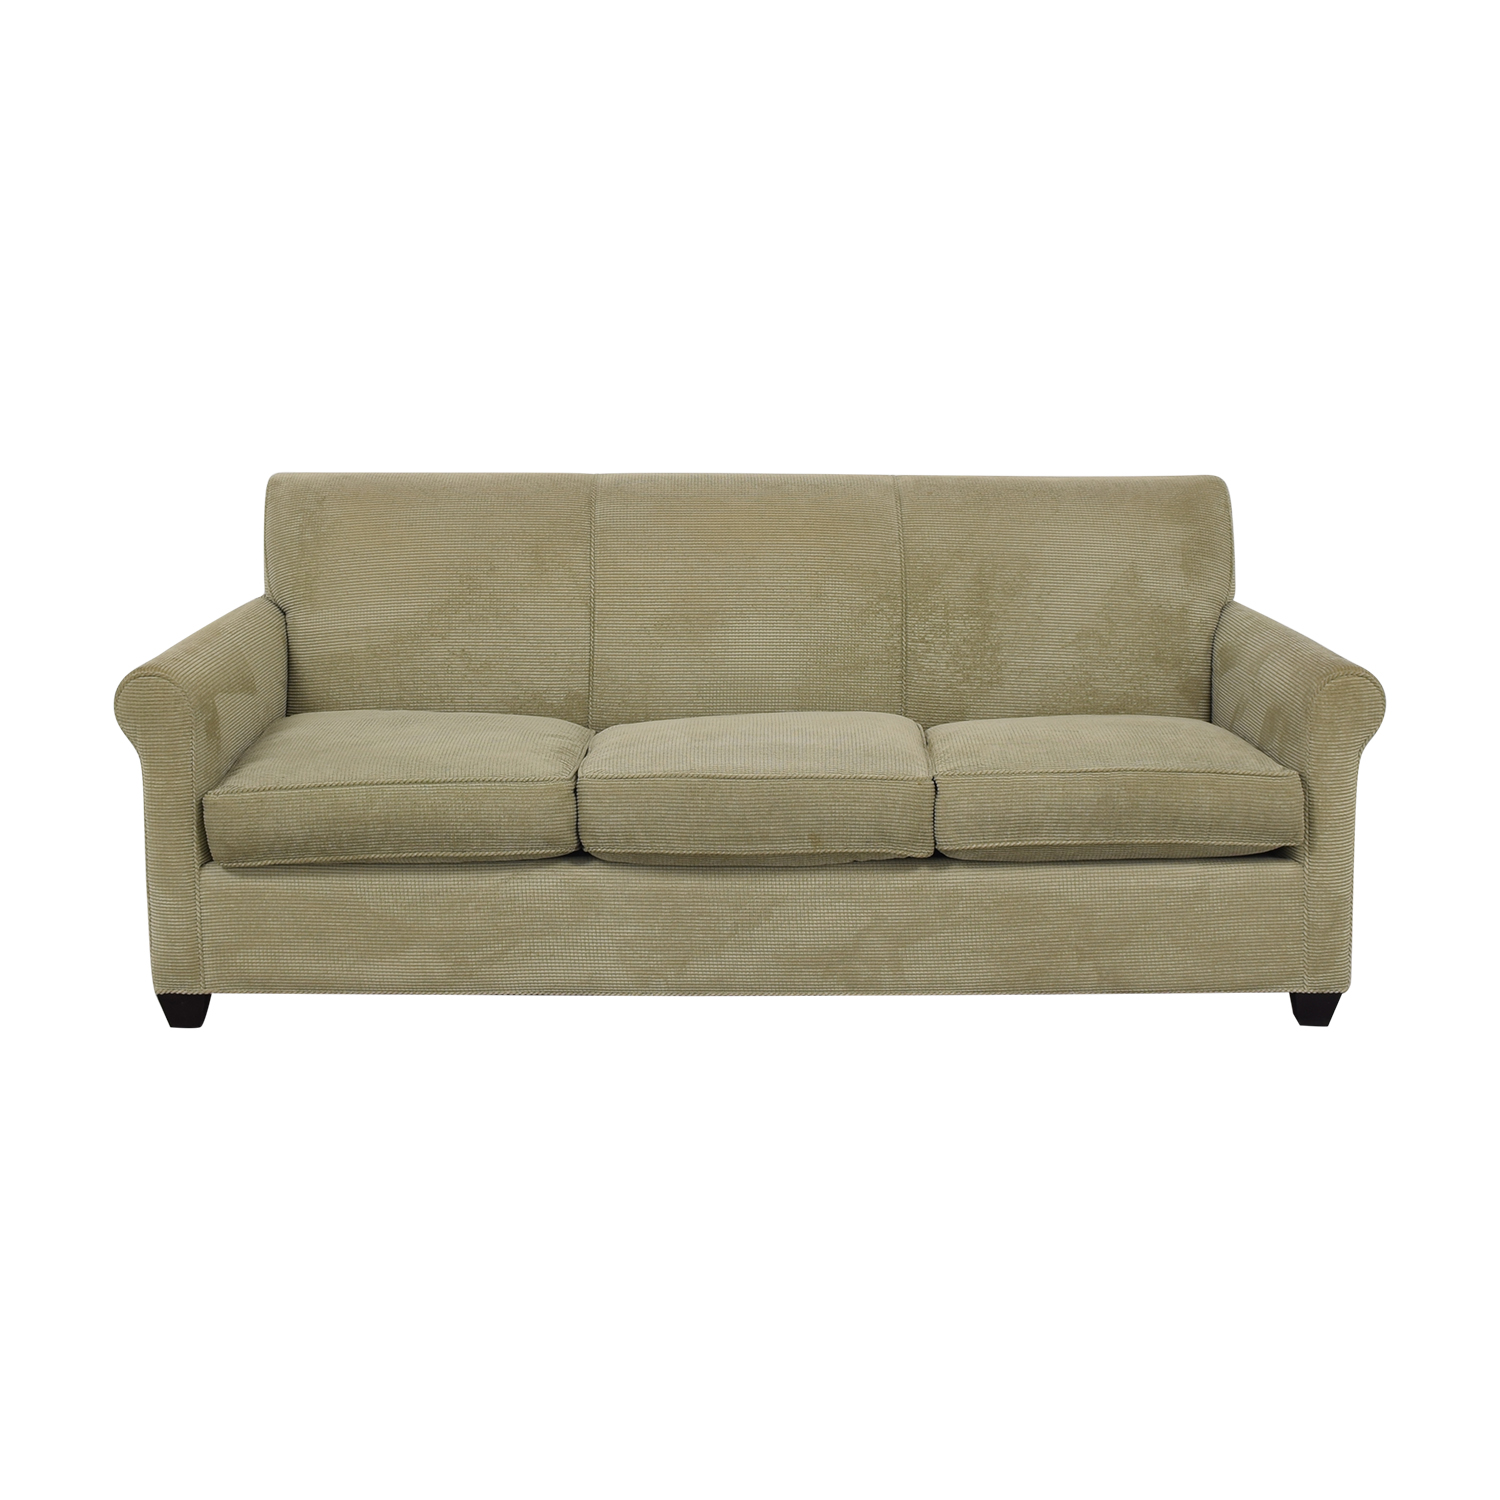 Crate & Barrel Crate & Barrel Three Seat Sofa beige